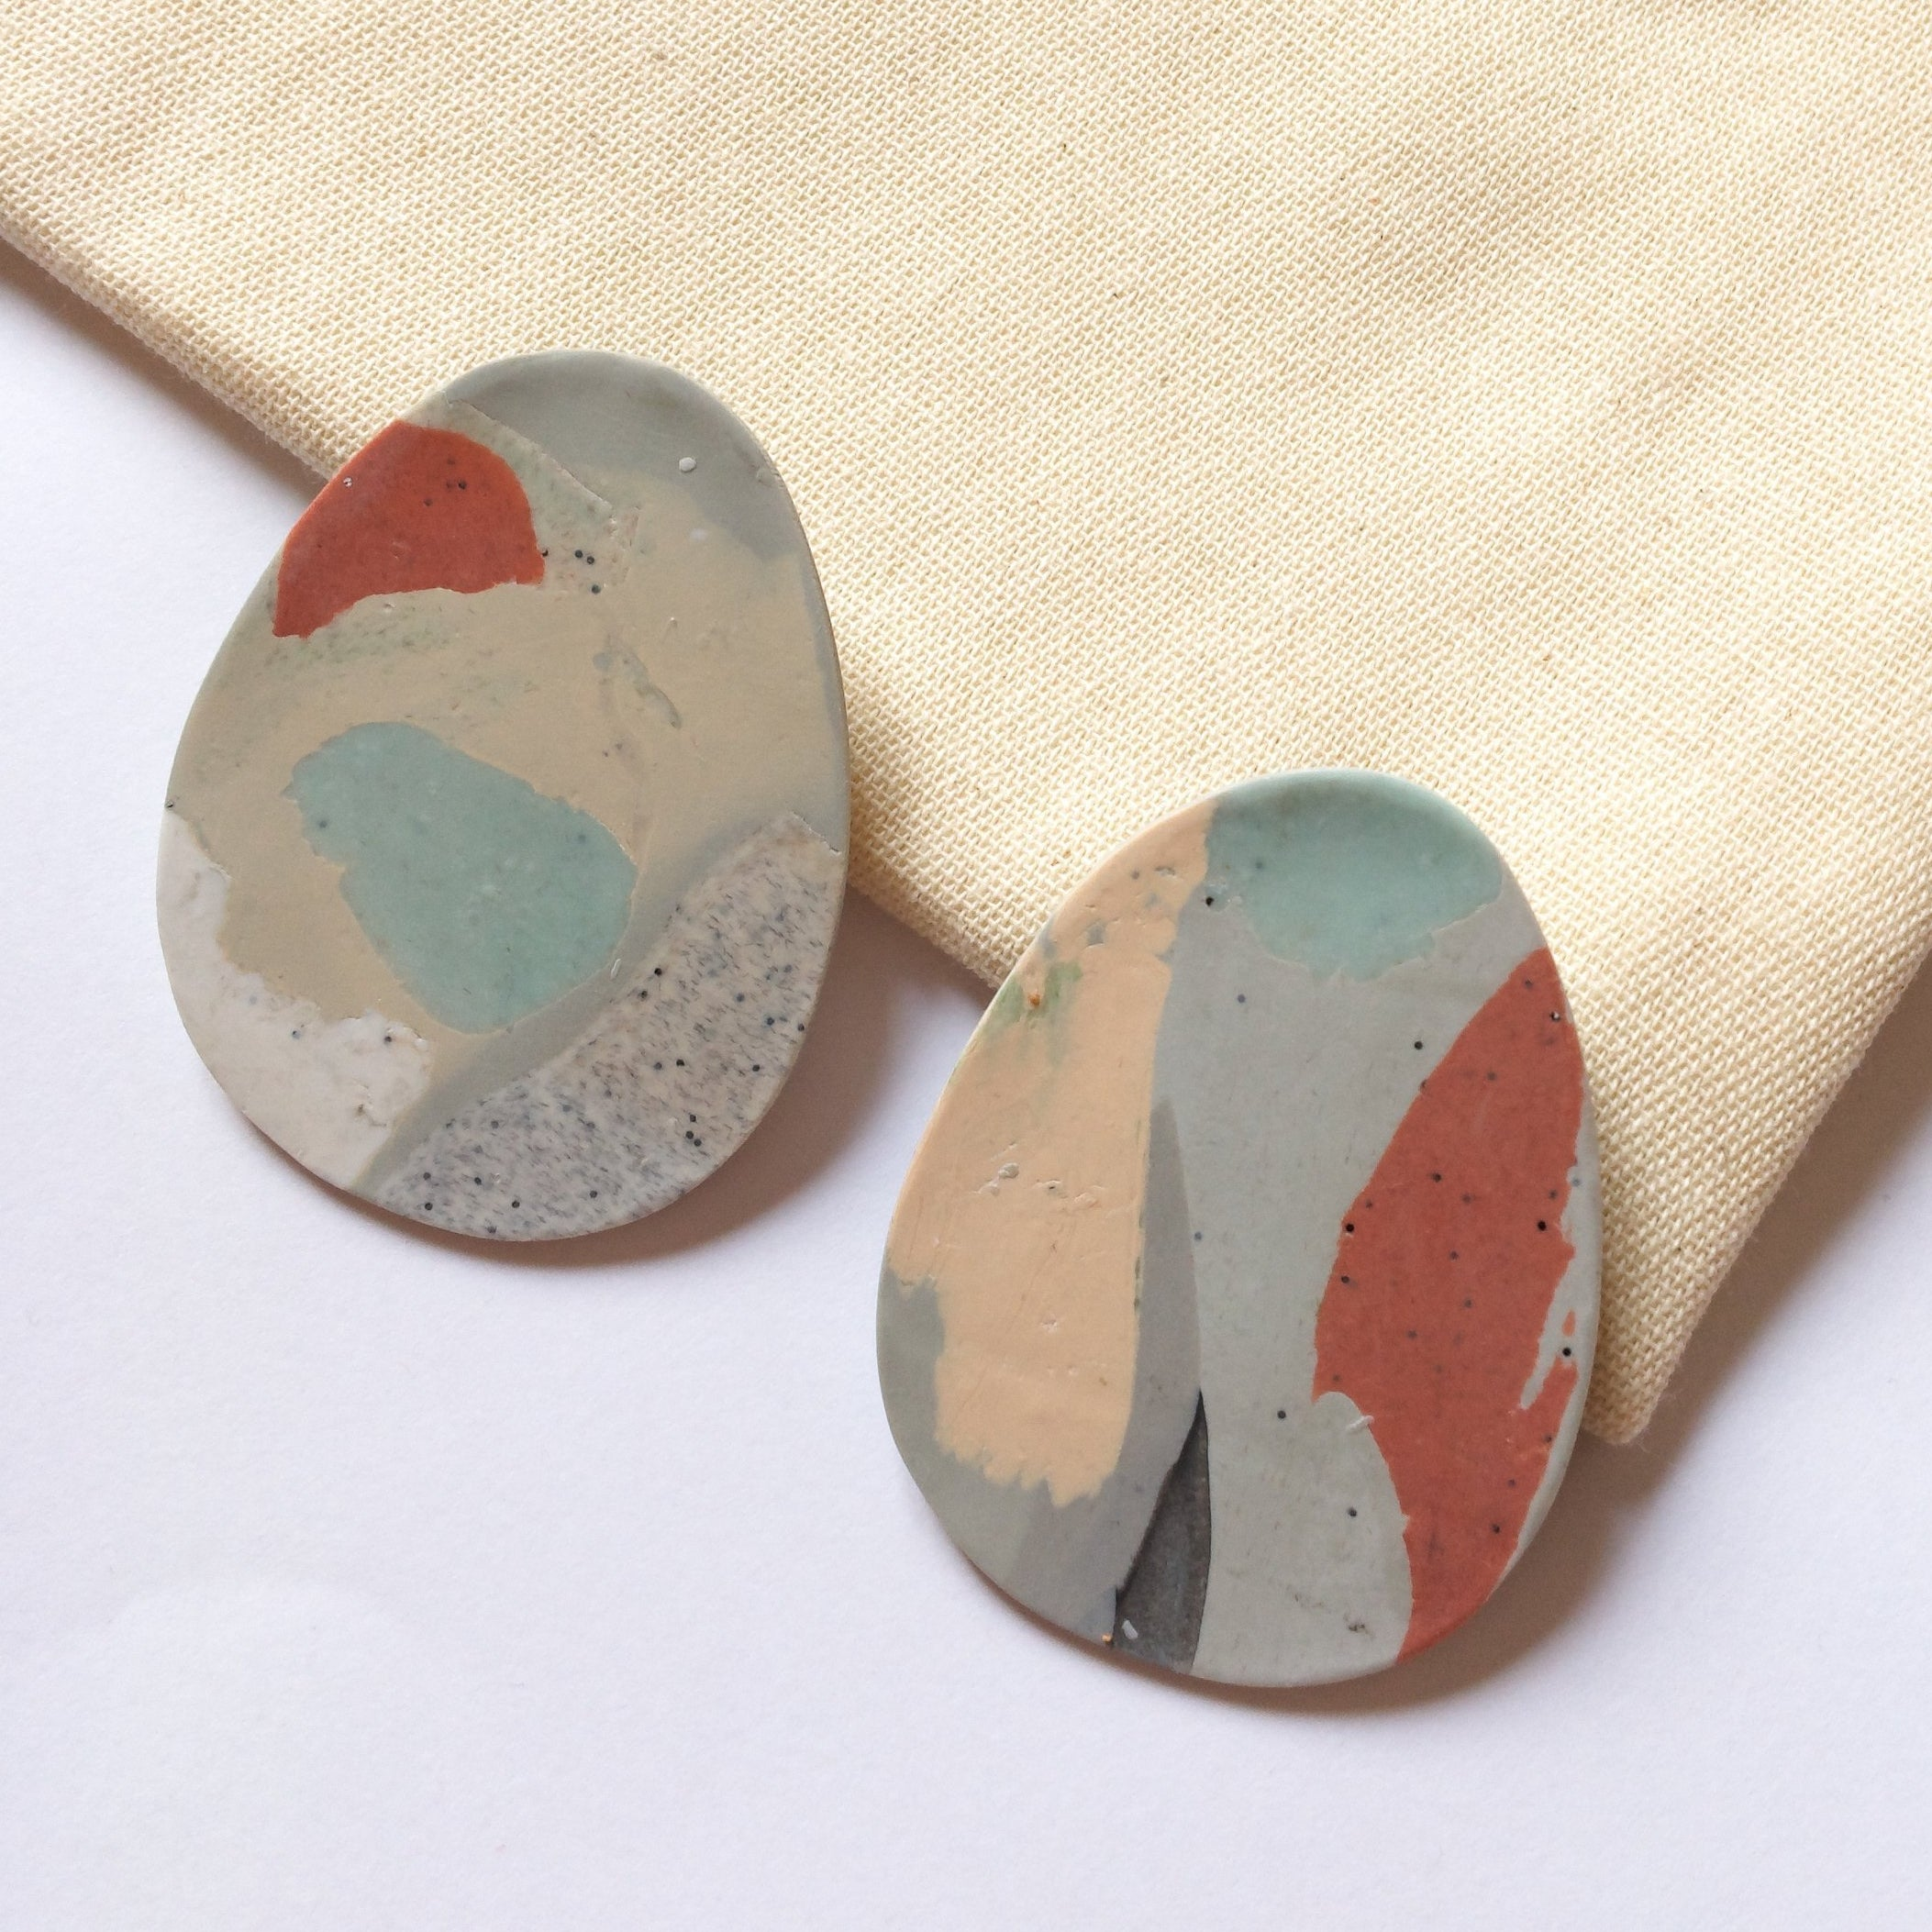 French Clay Earrings - Lagos, Hello Zephyr, Handcrafted Home Goods and Gifts